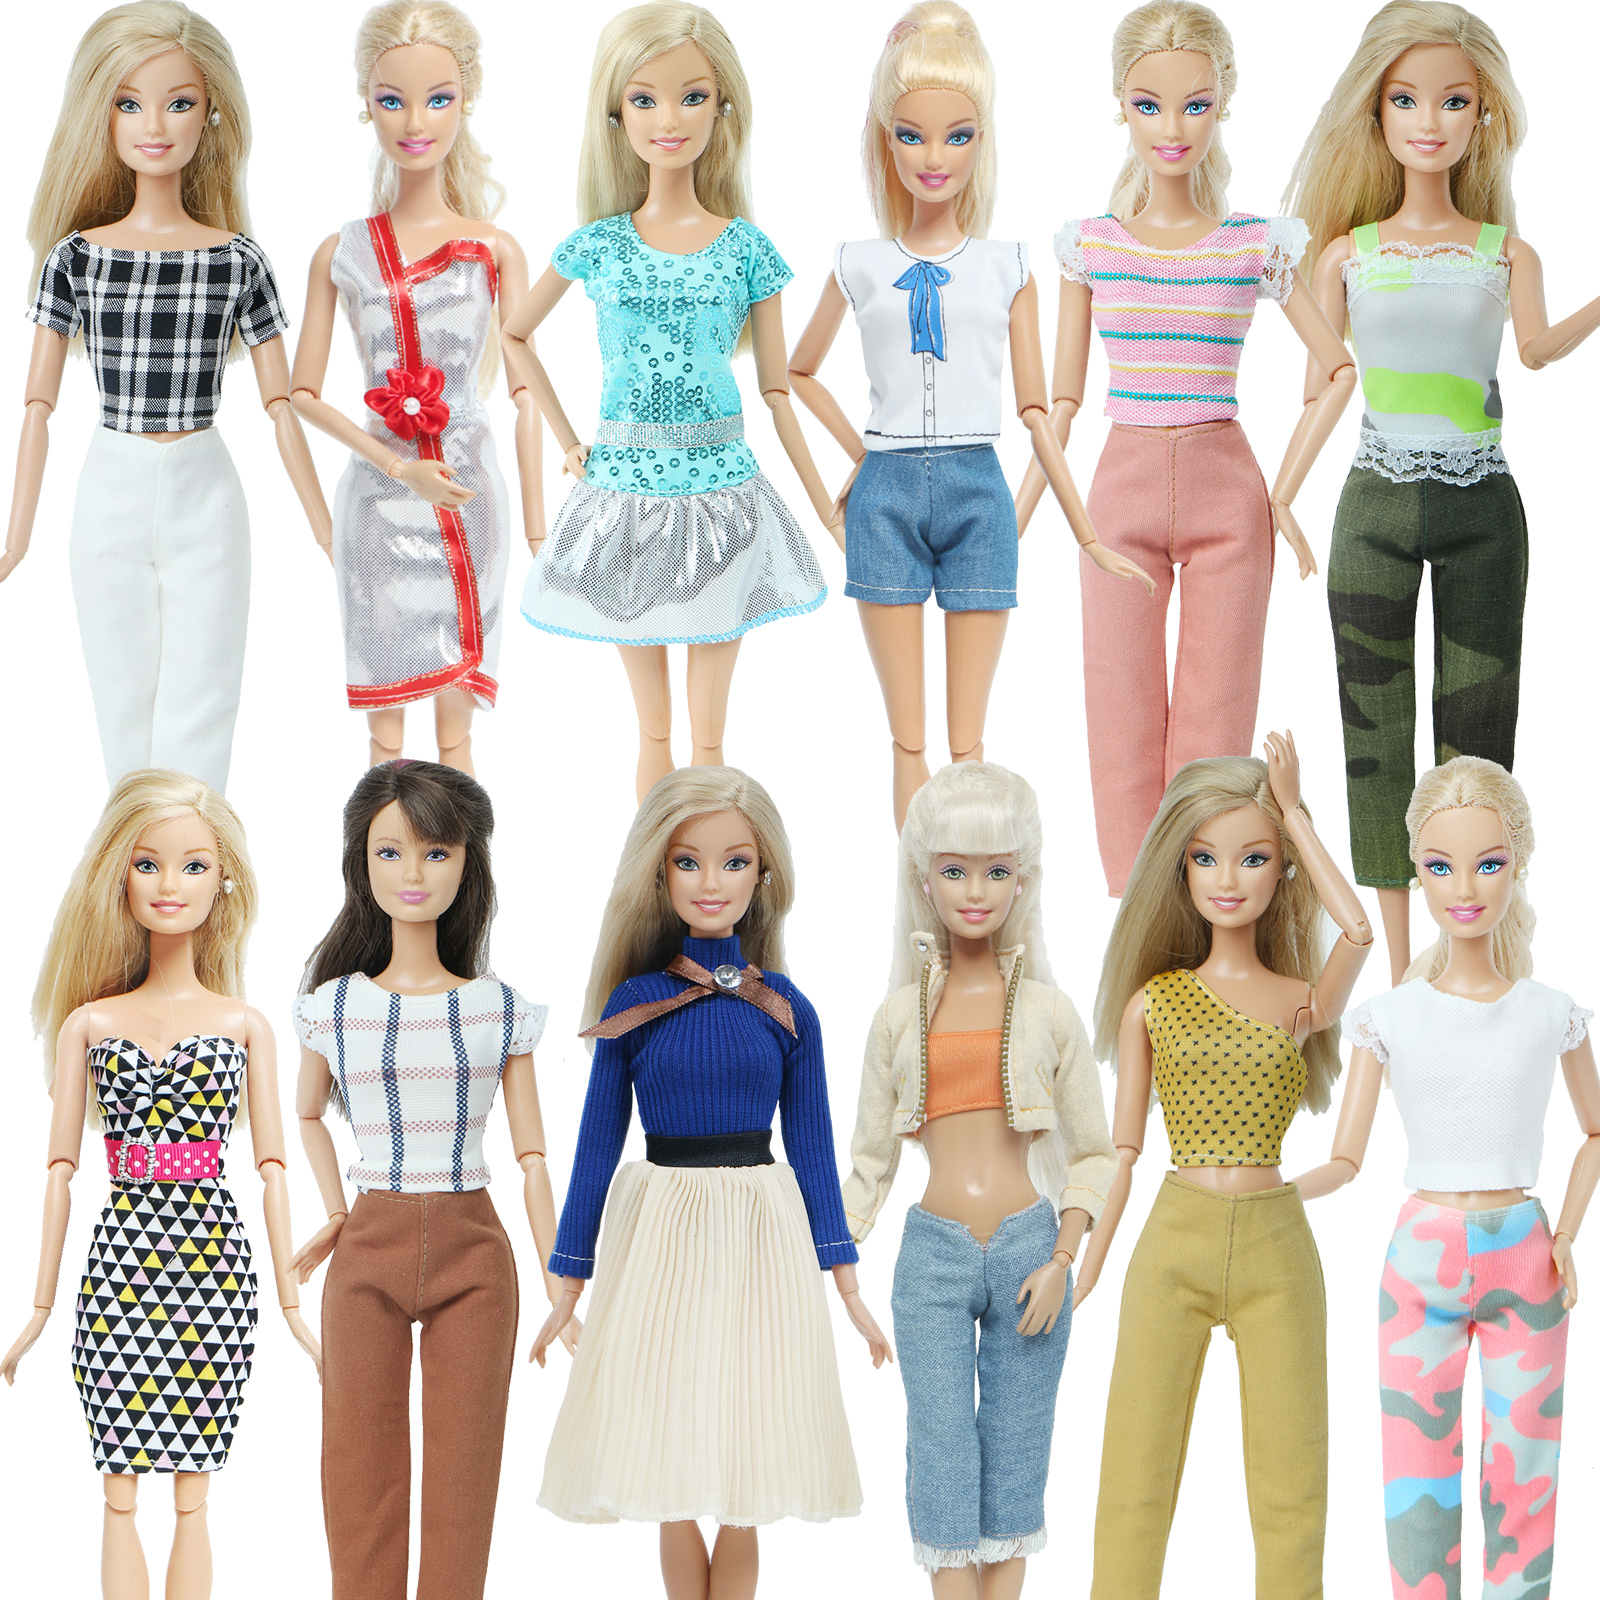 Handmade Clothes for Bar Doll Clothes Dresses for Barbie Girl Dolls 10 Pcs Lot